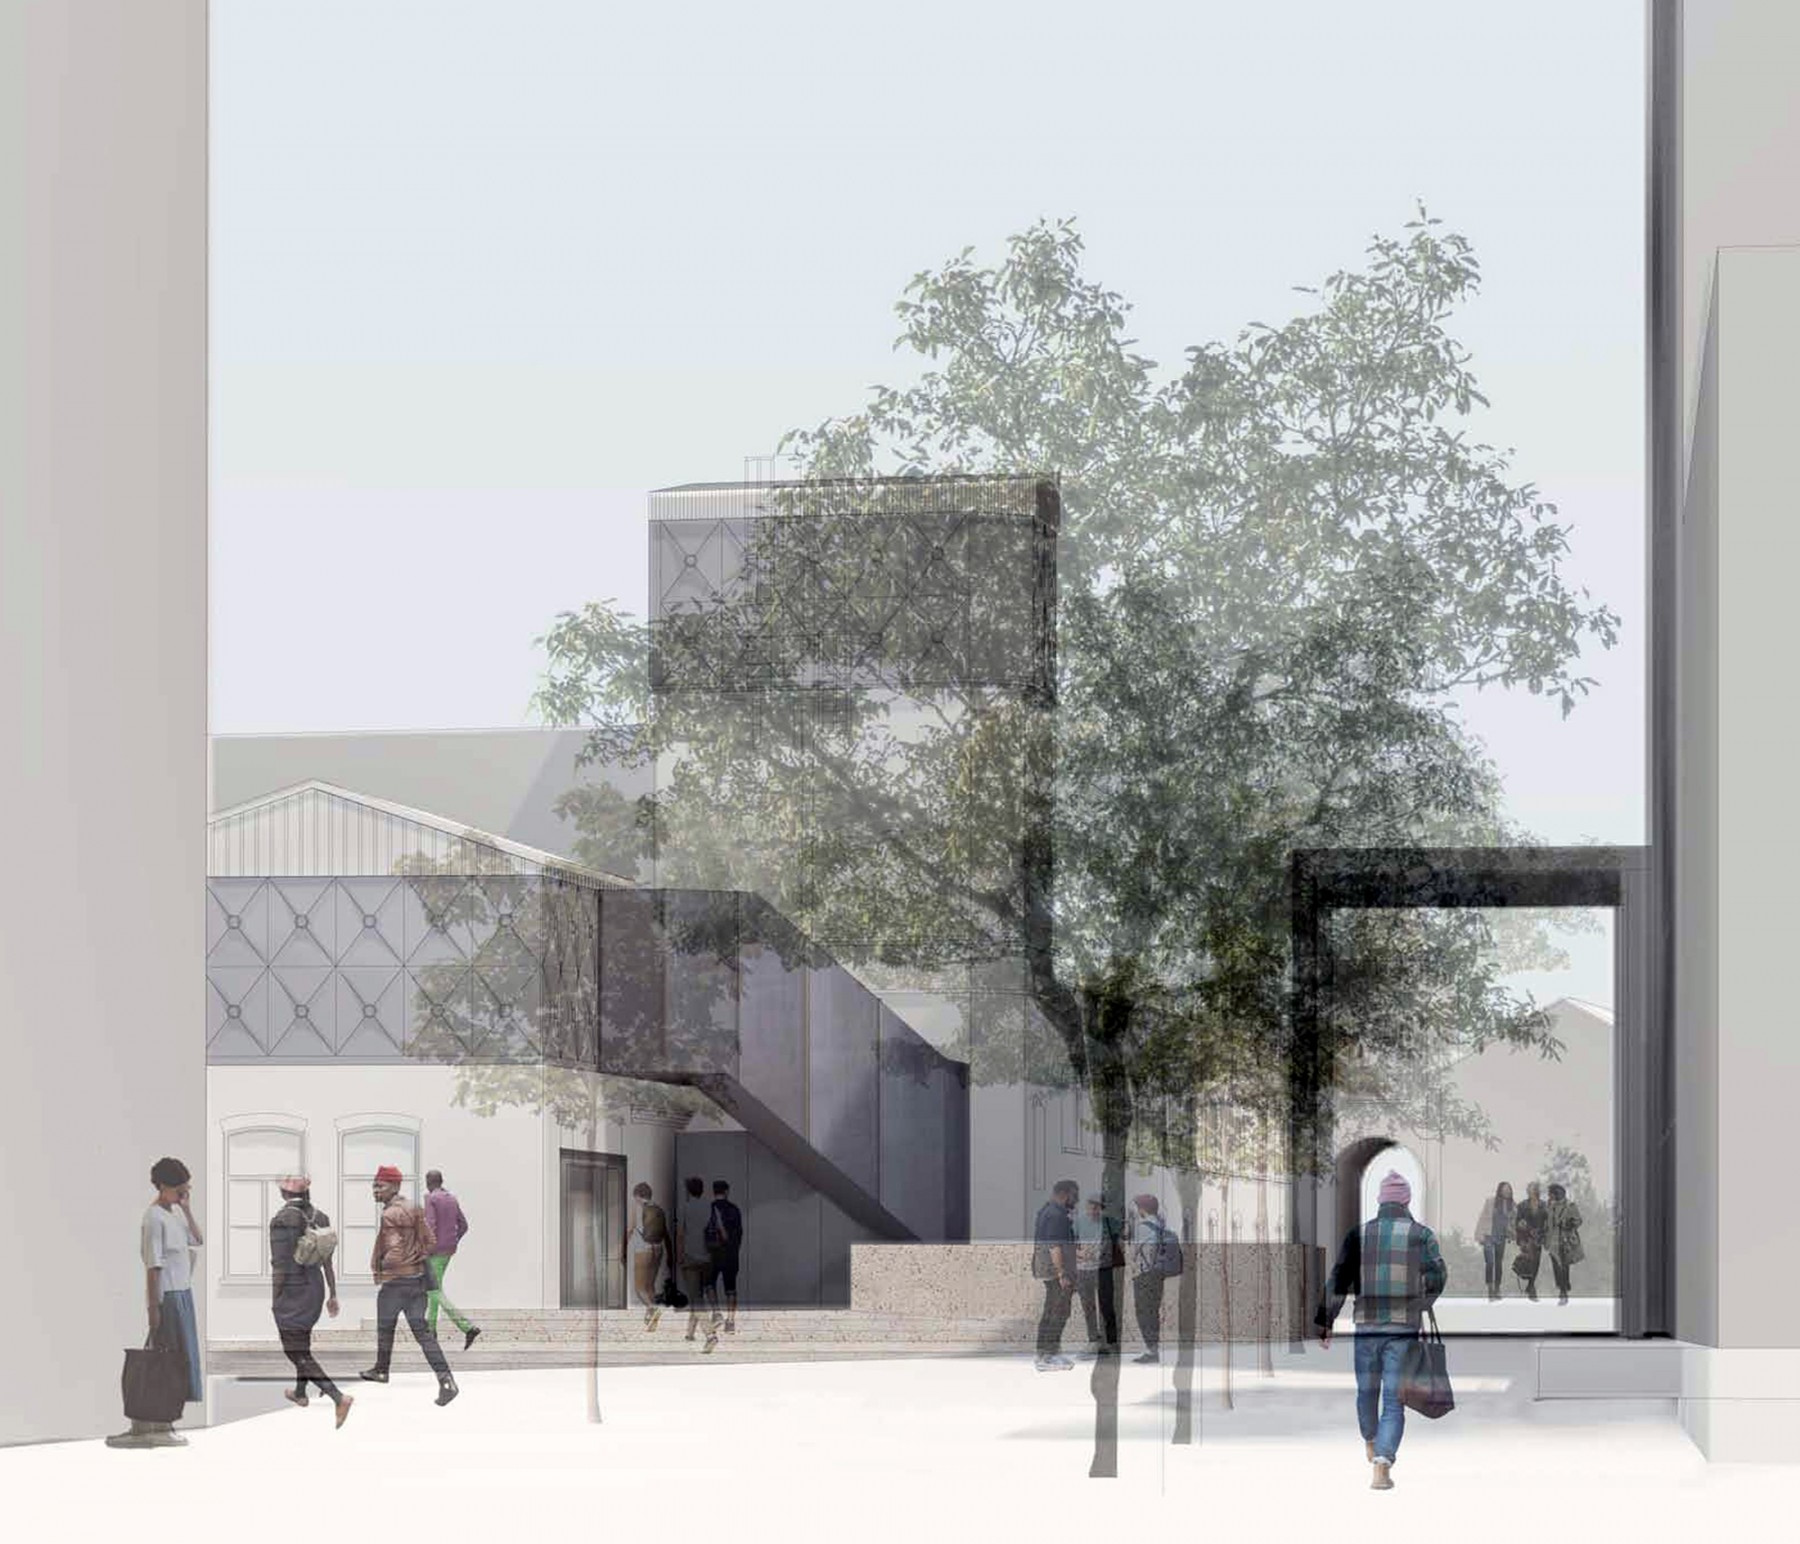 Goldsmiths-competition-gallery-London-contemporary-art-short-list-Jamie-Fobert-architects-proposed public area2